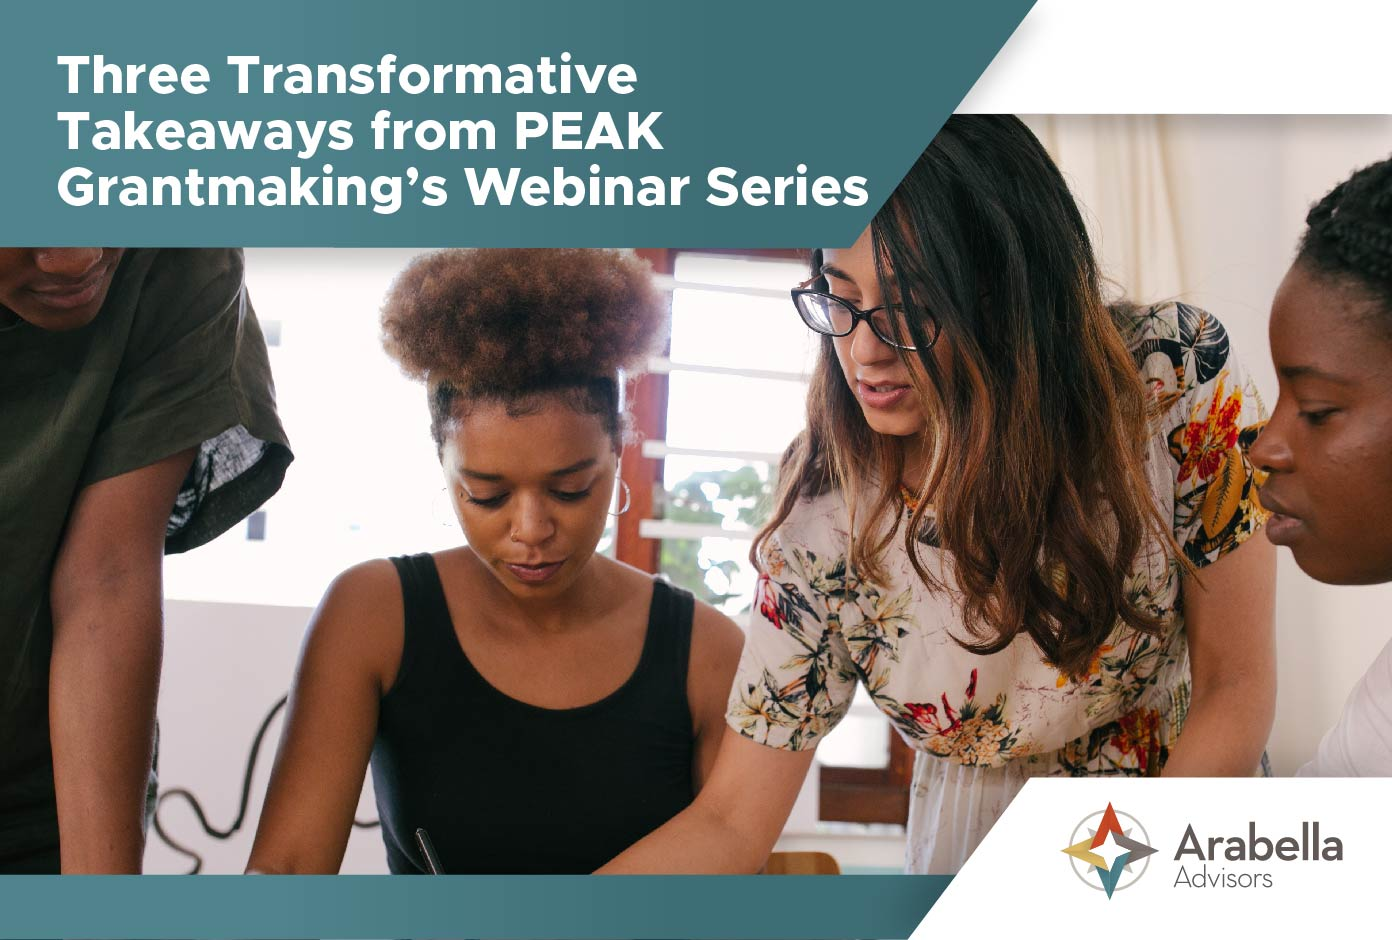 Three Transformative Takeaways from PEAK Grantmaking's Webinar Series